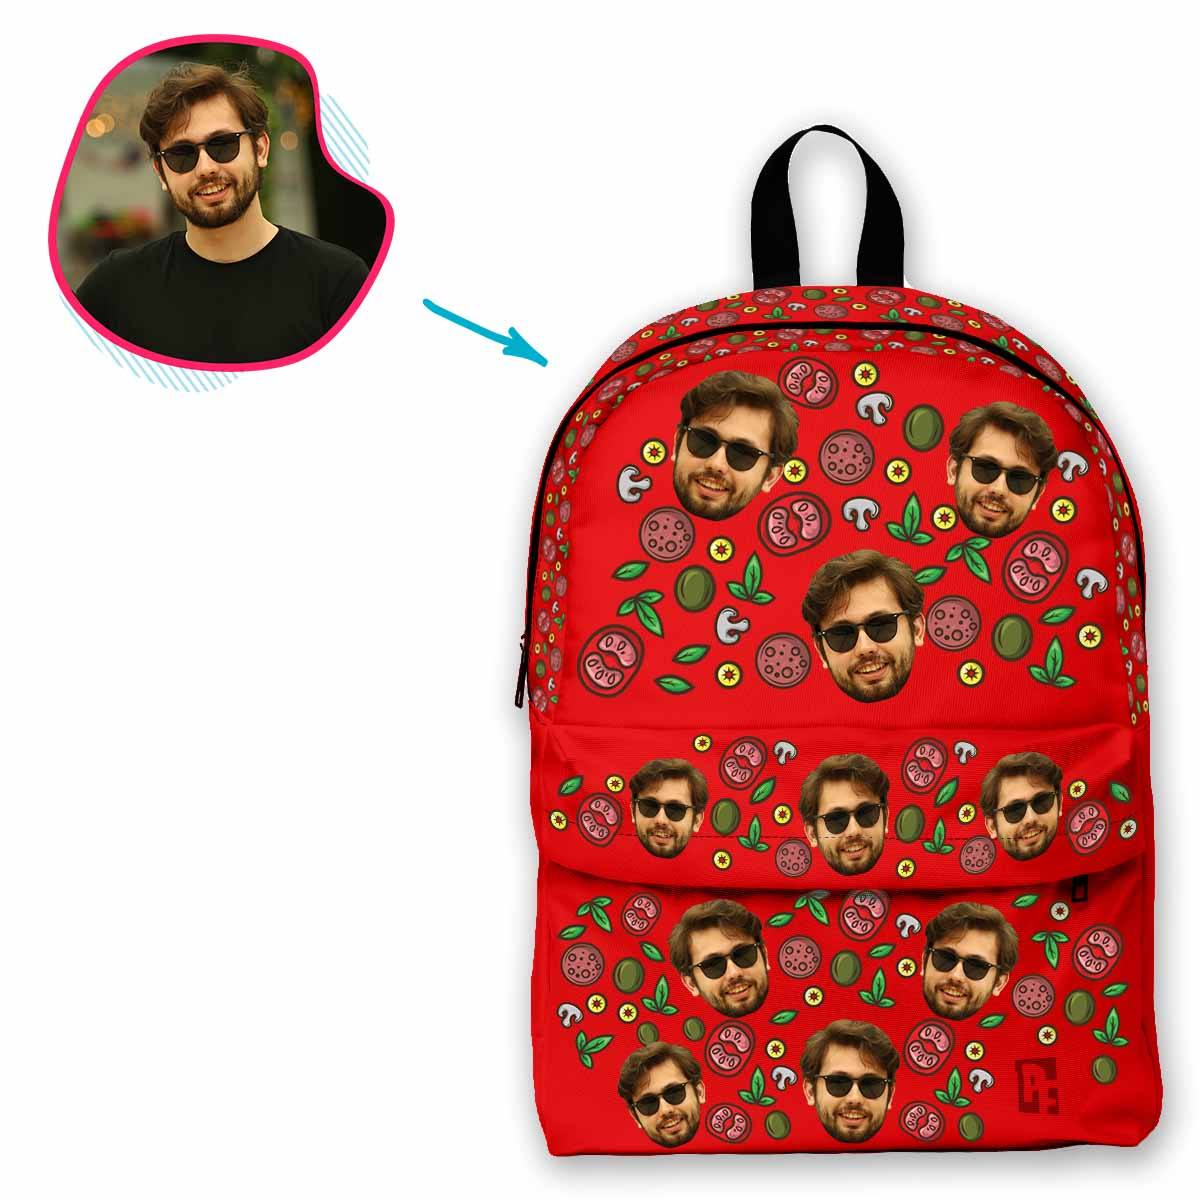 red Pizza classic backpack personalized with photo of face printed on it